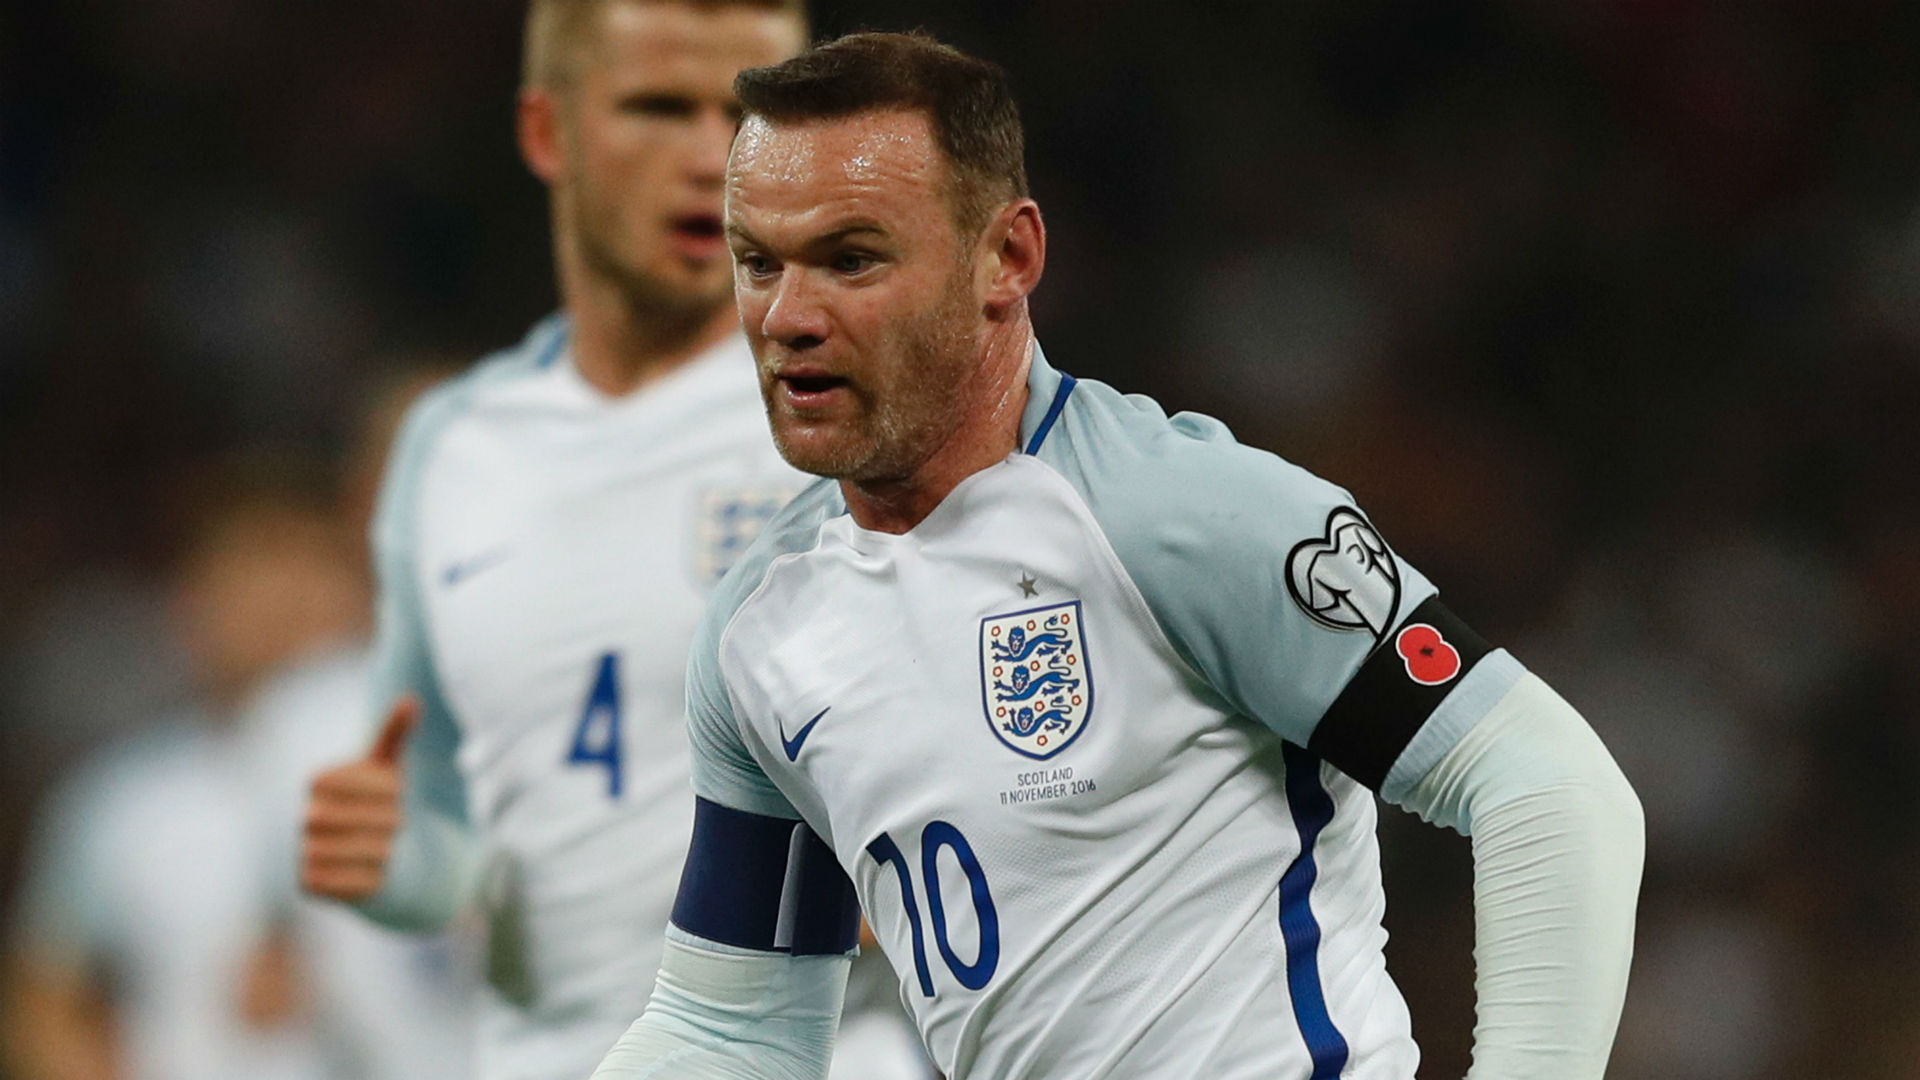 Gareth Southgate confirms, Rooney will remain England captain